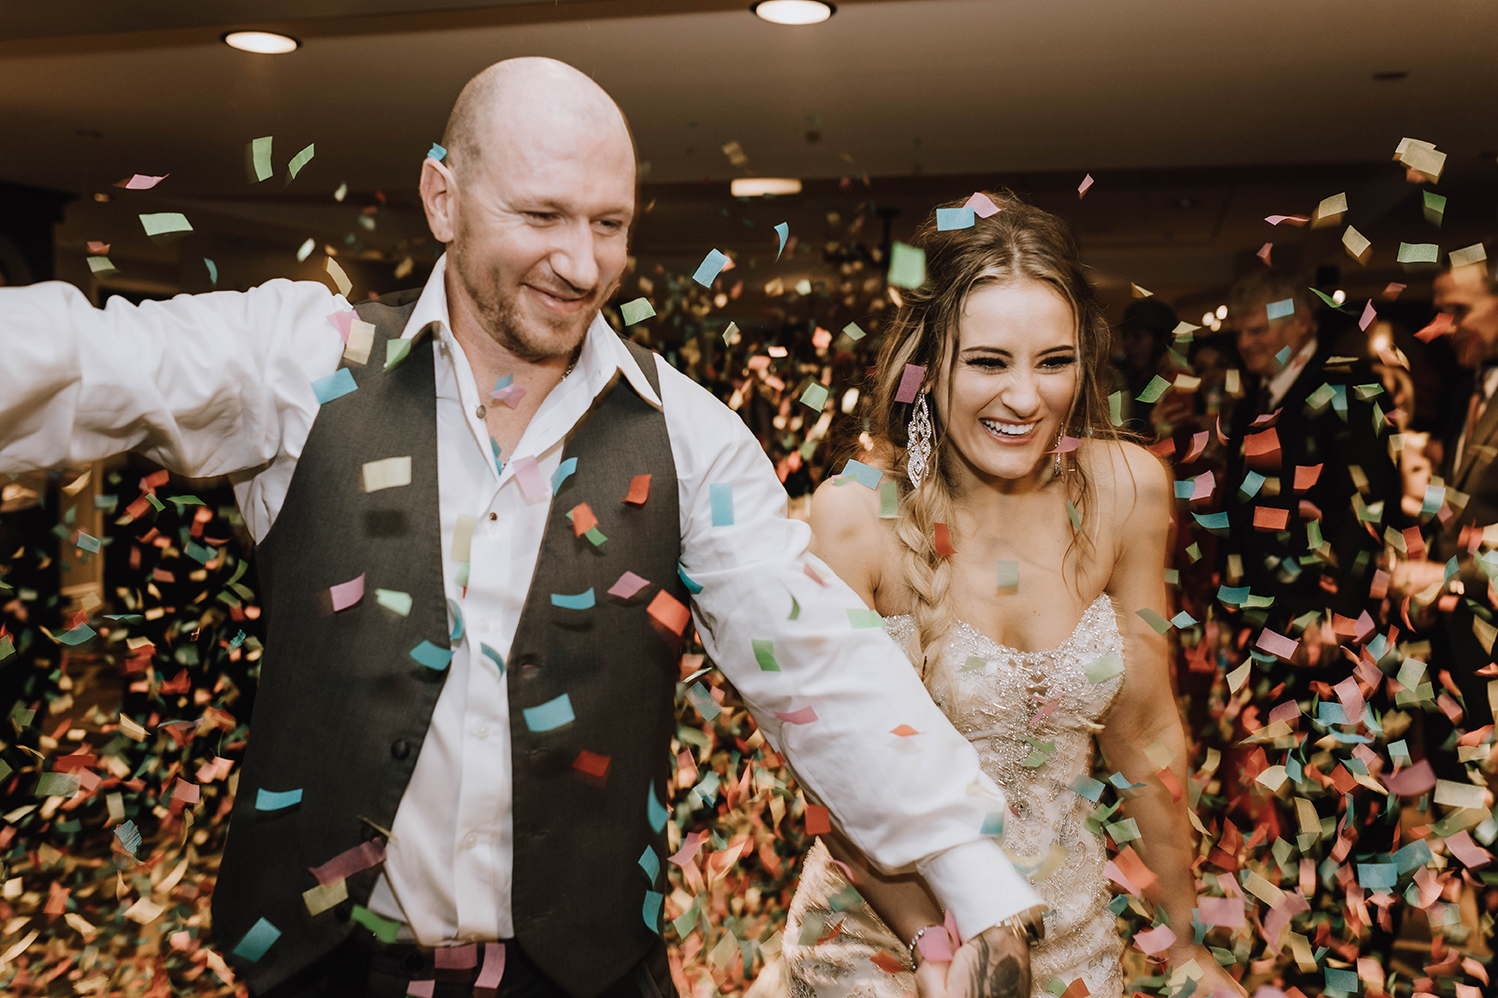 houston, hotel wedding, confetti, couple exit